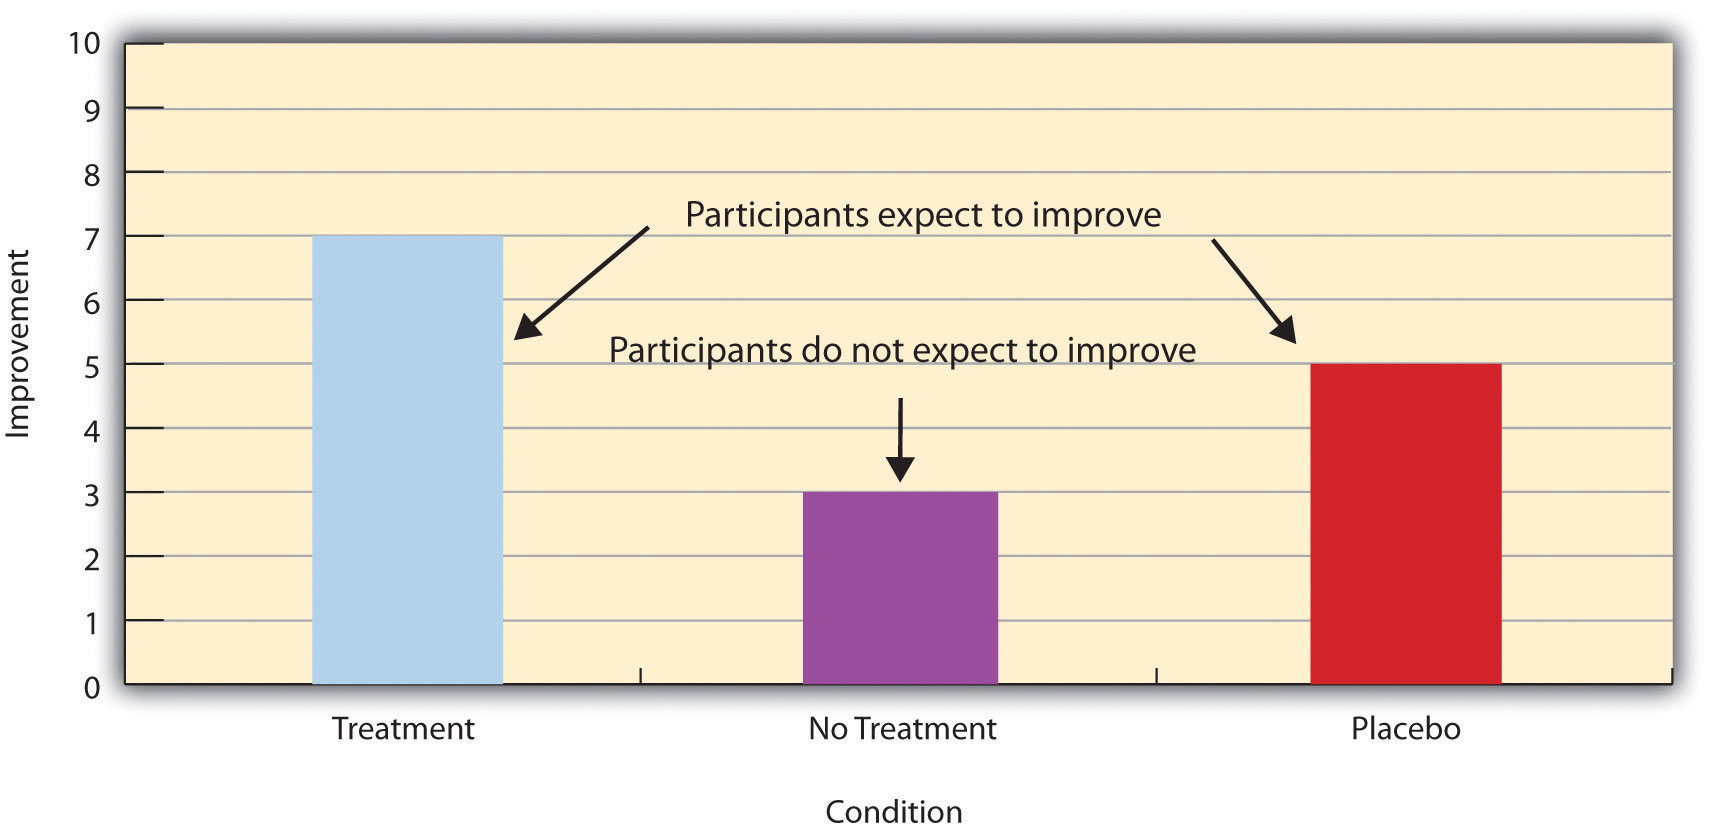 Hypothetical Results From a Study Including Treatment, No-Treatment, and Placebo Conditions